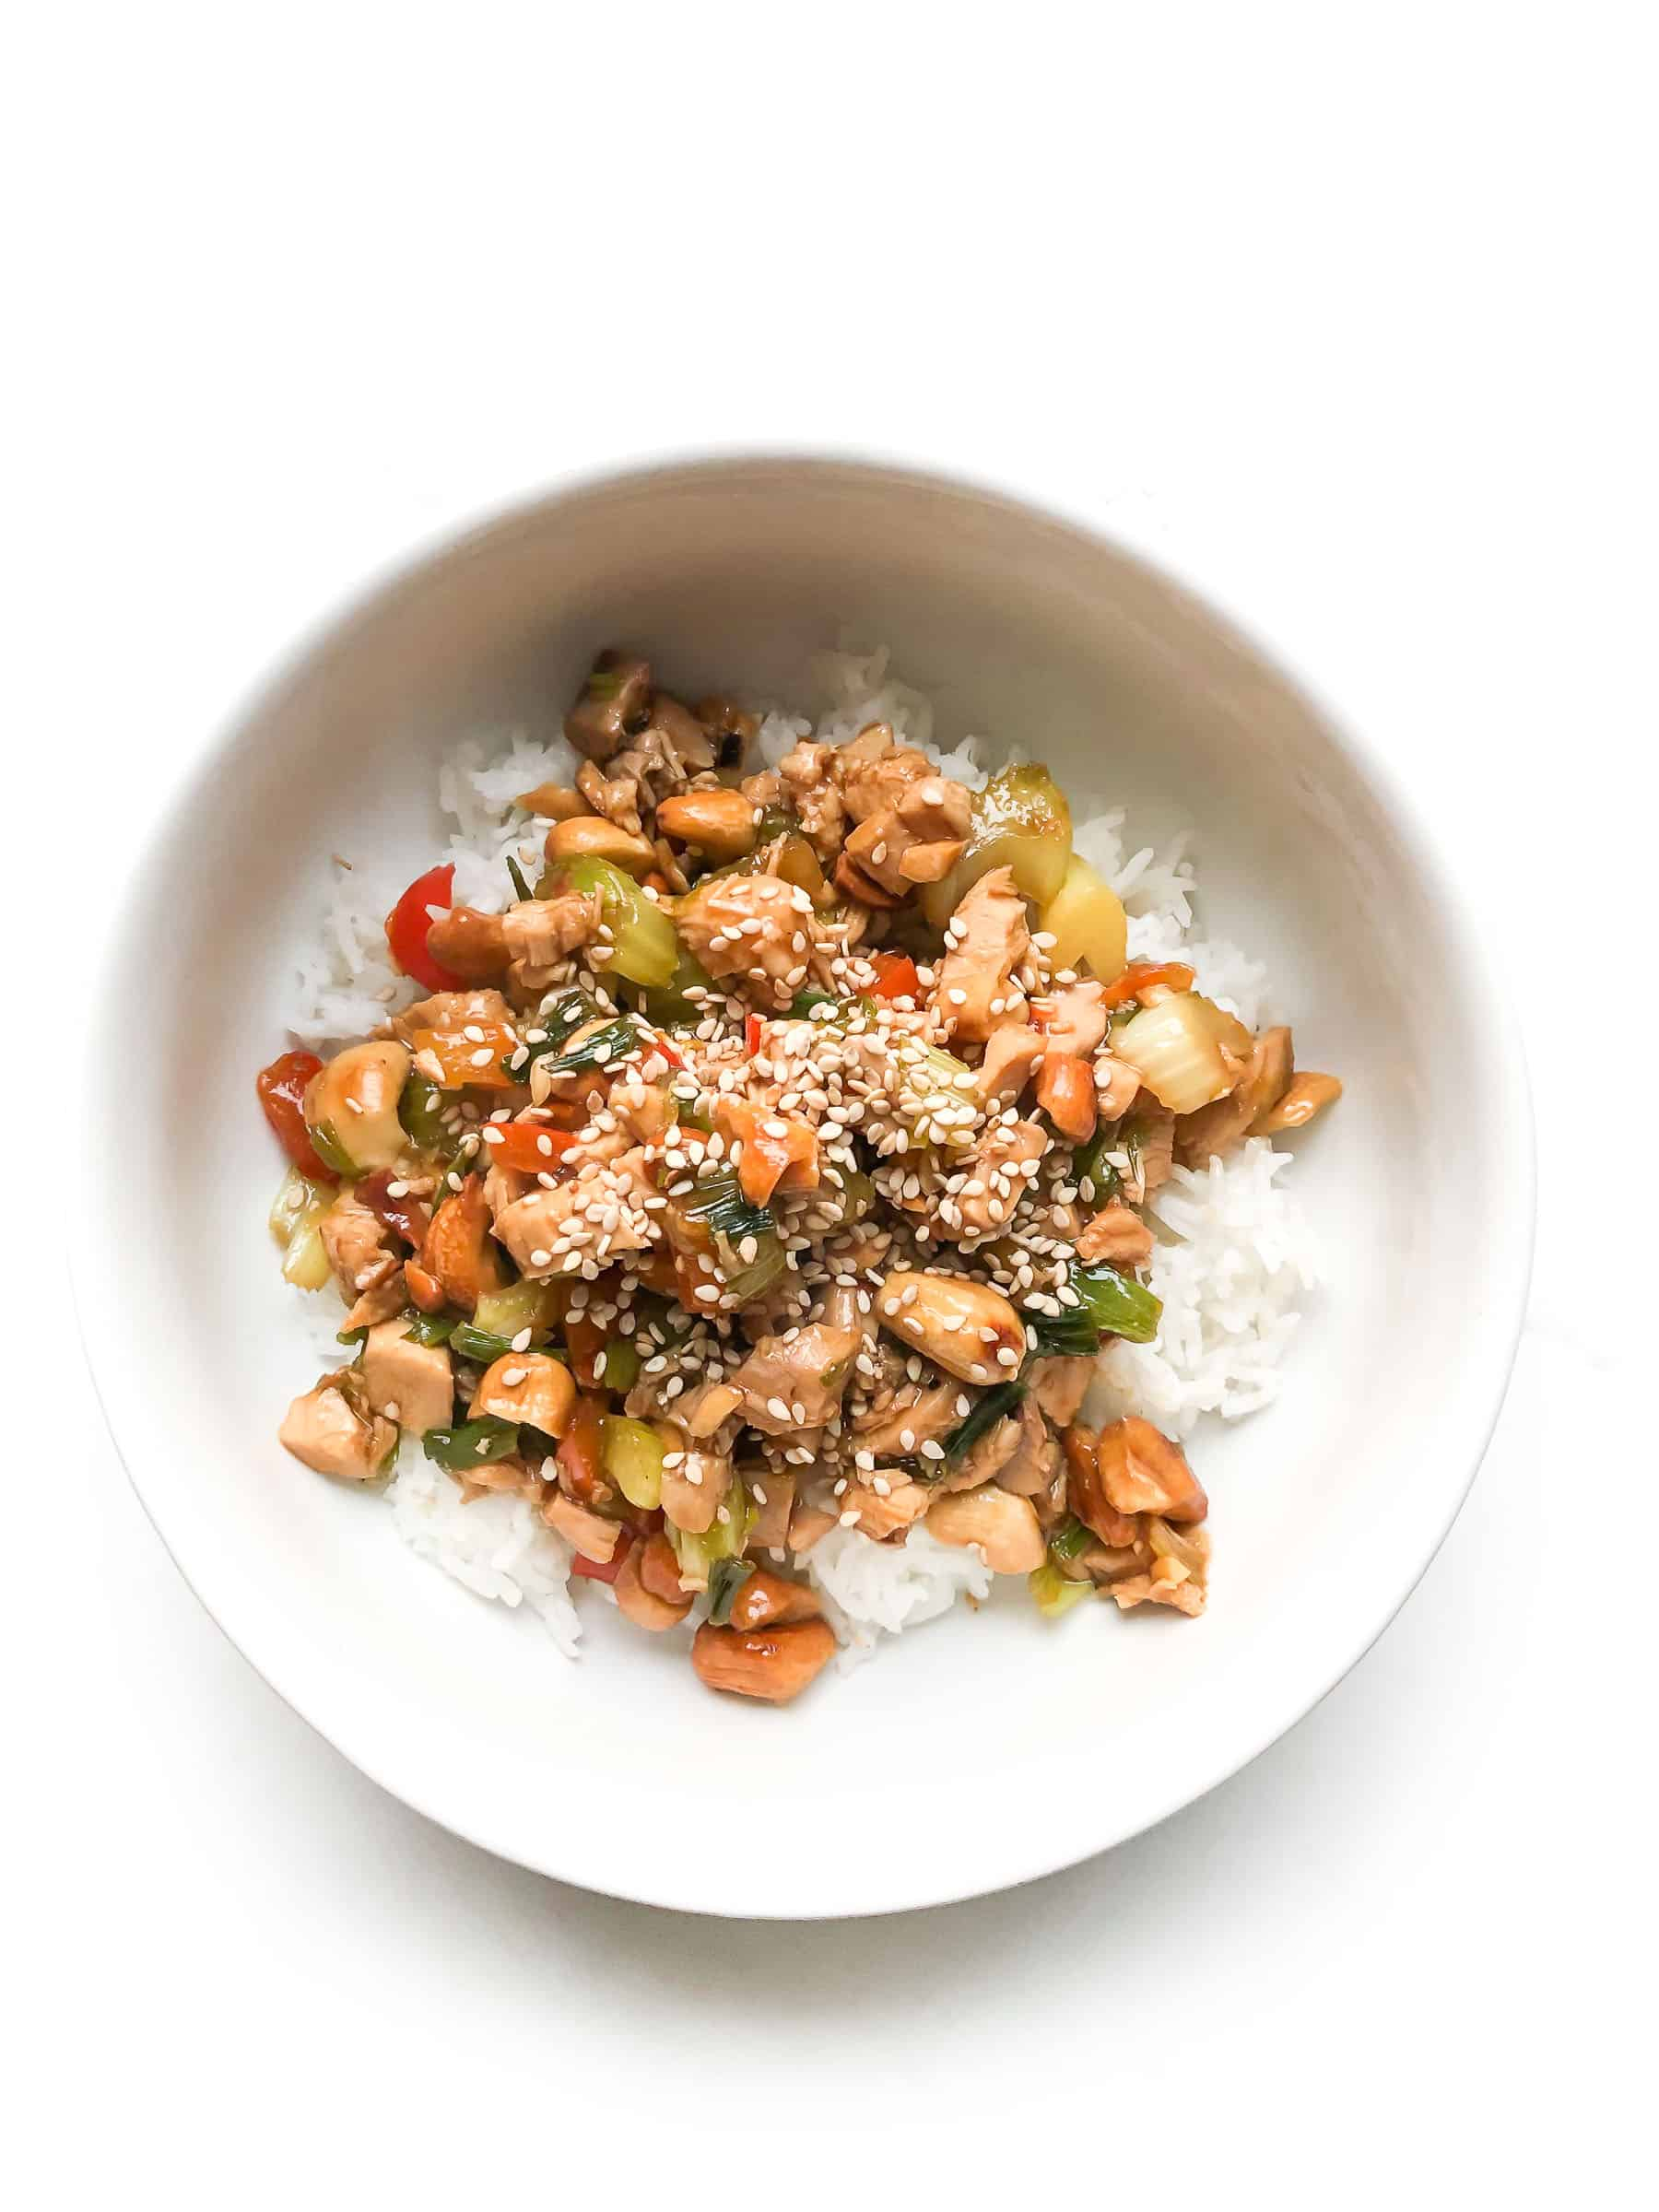 CHICKEN AND CELERY STIR FRY IN A WHITE BOWL TOPPED WITH SESAME SEEDS OVER CAULIFLOWER RICE